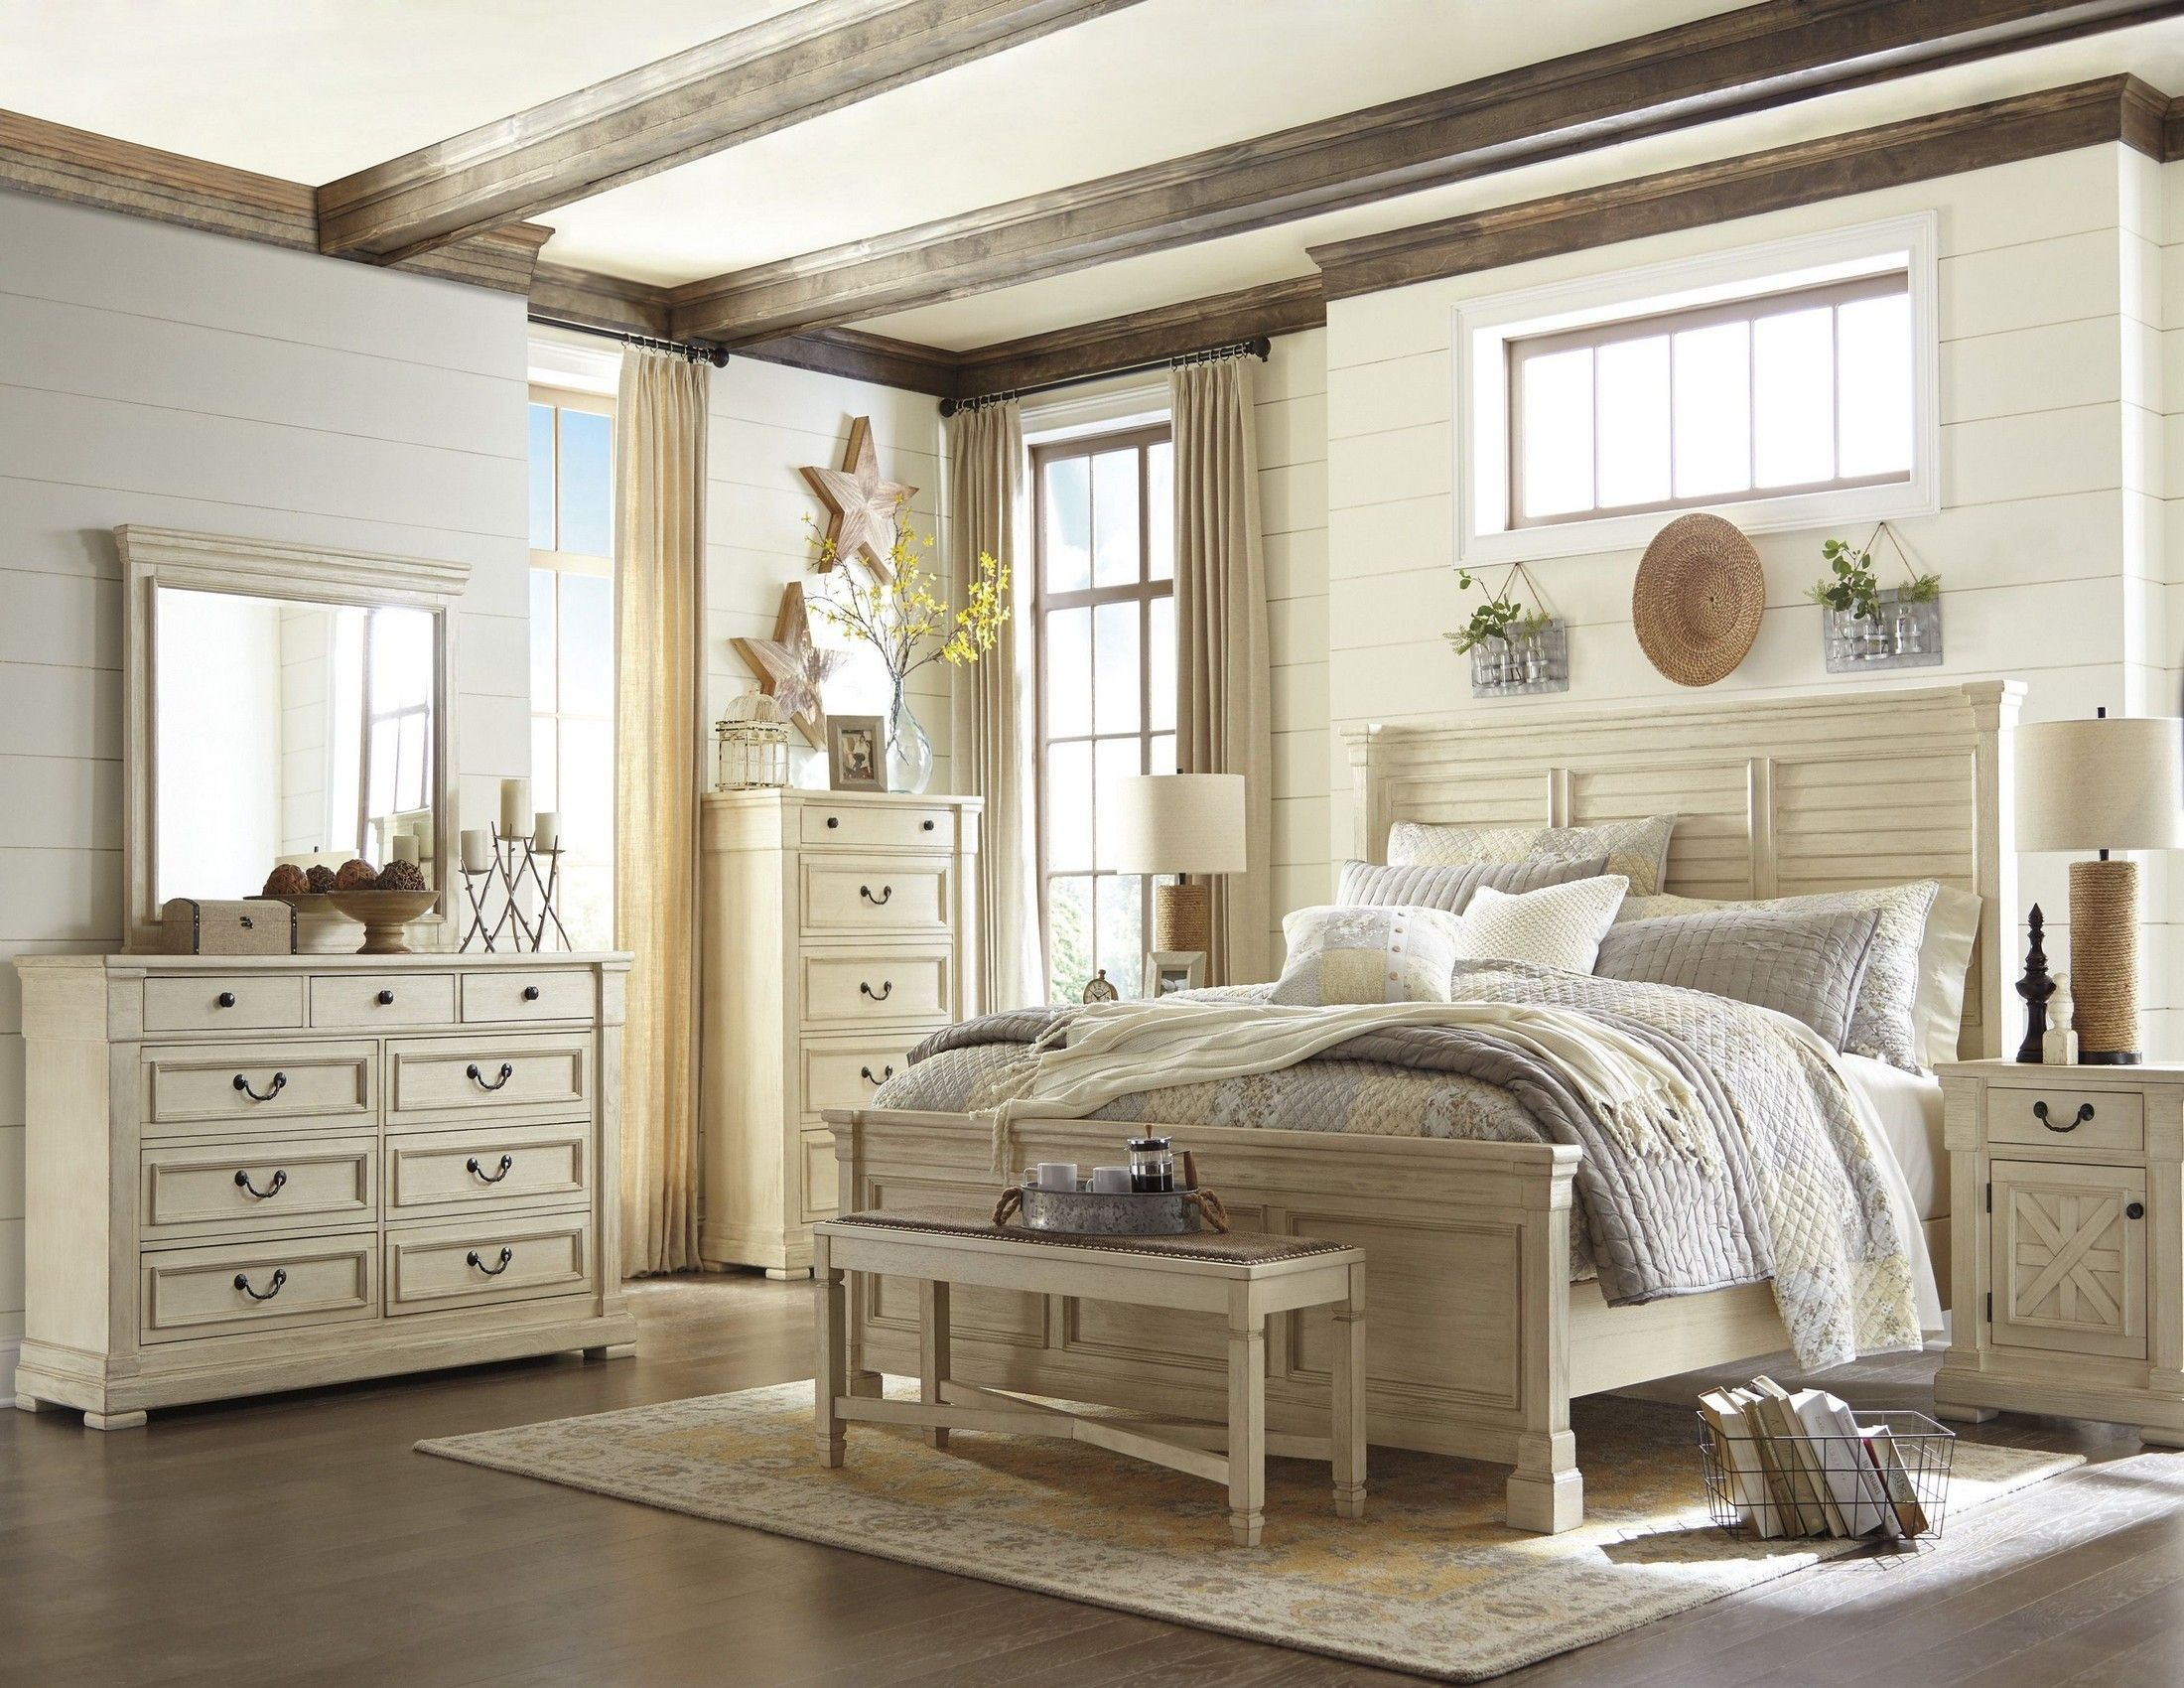 accent a room with the bolanburg bedroom set that exudes a mix of